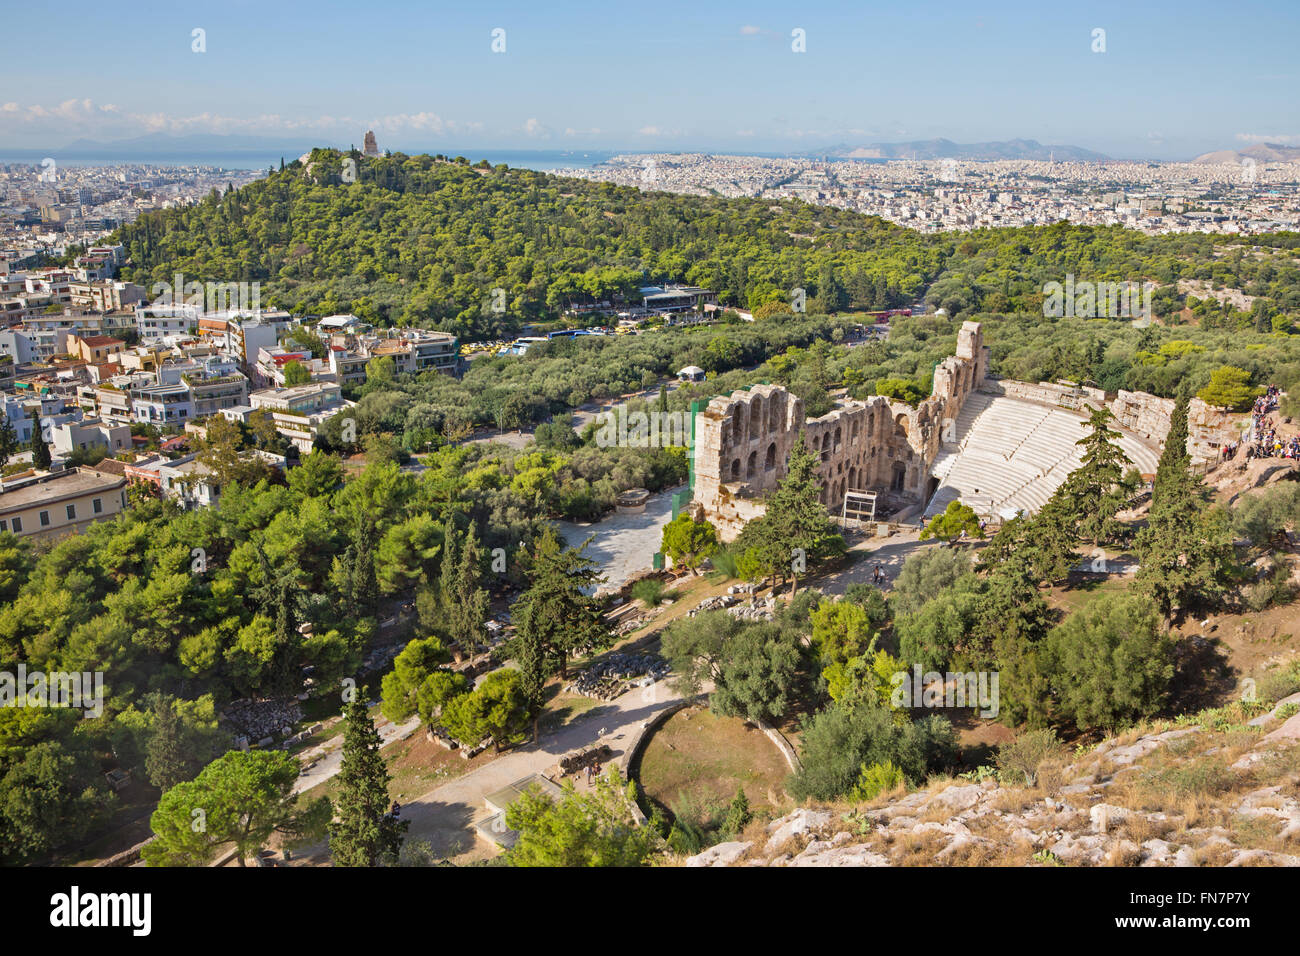 Athens - The Odeon of Herodes Atticus or Herodeon under The Acropolis in morning light and the town panorama - Stock Image